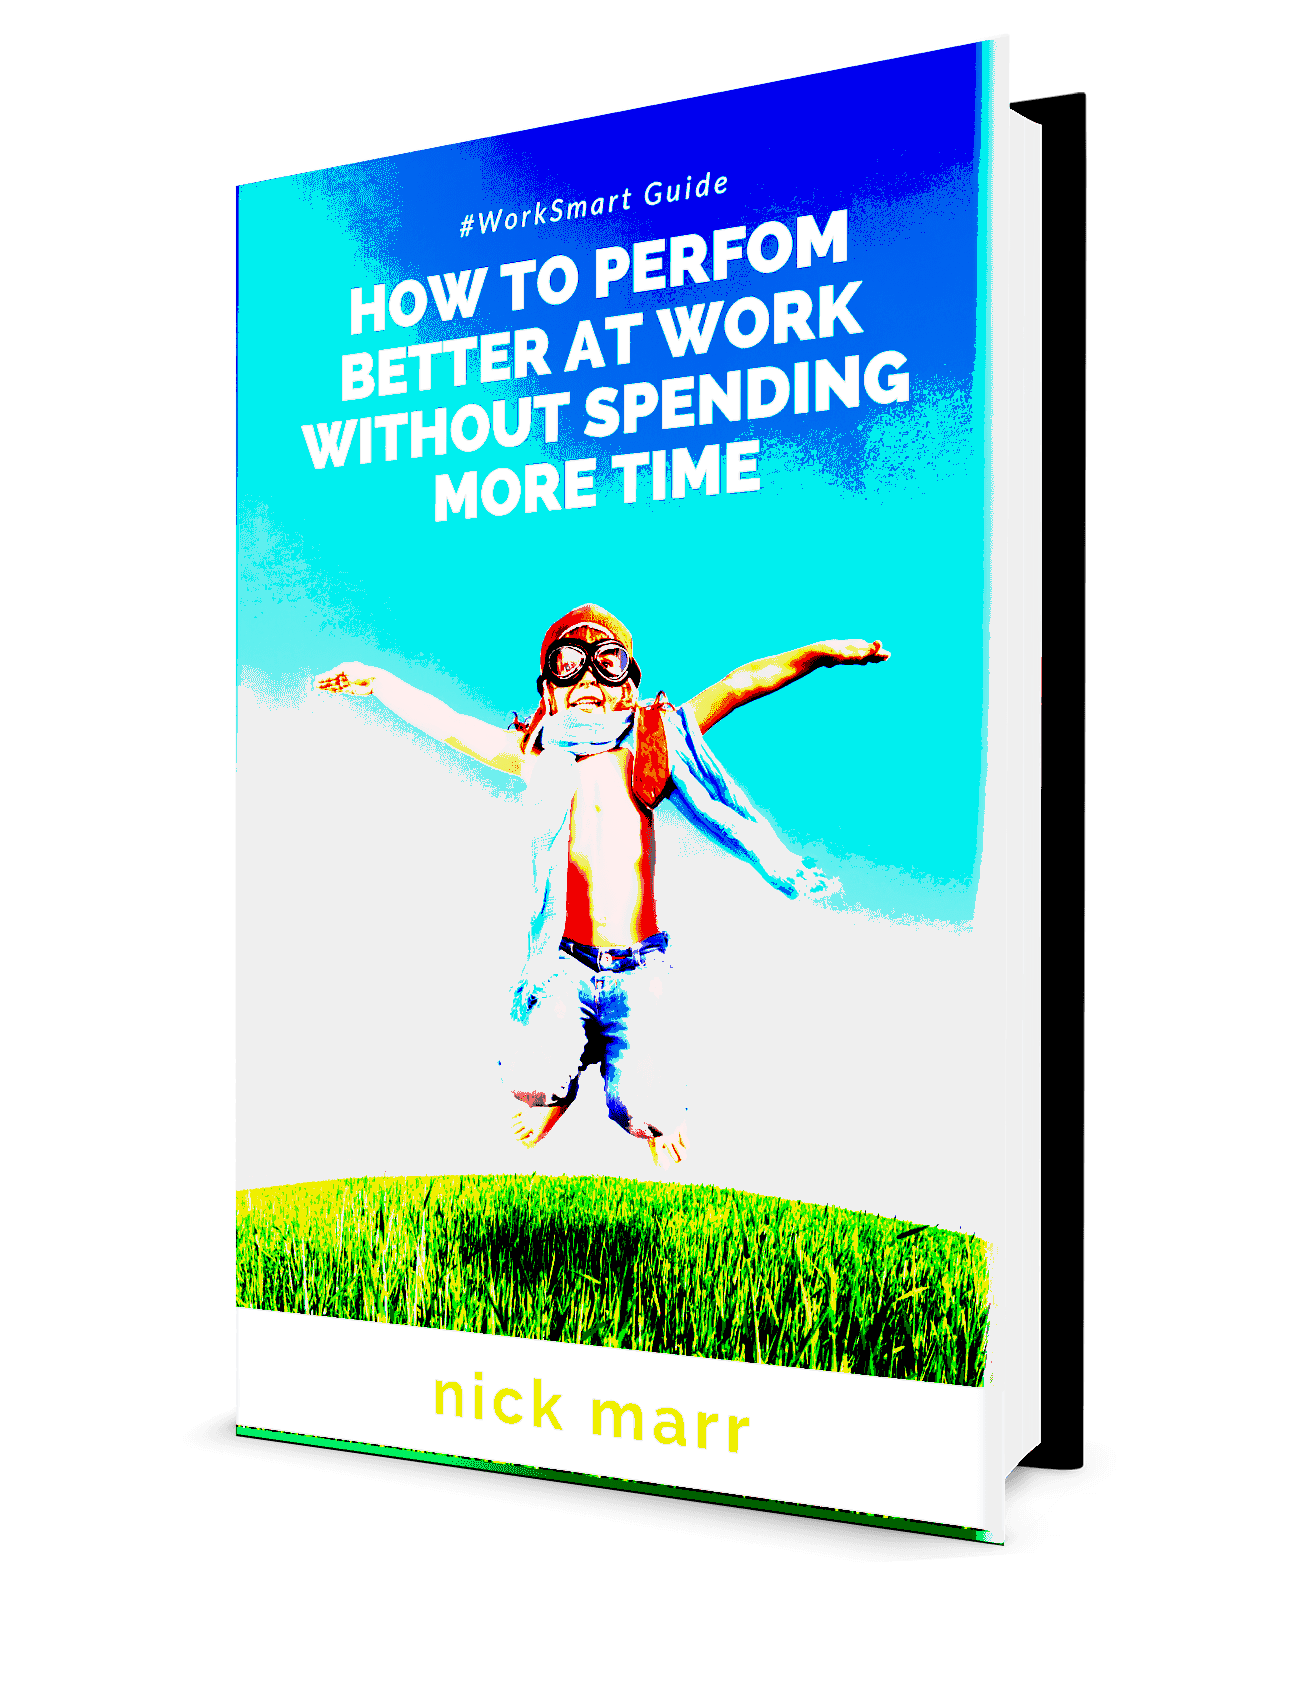 Book by Nick Marr